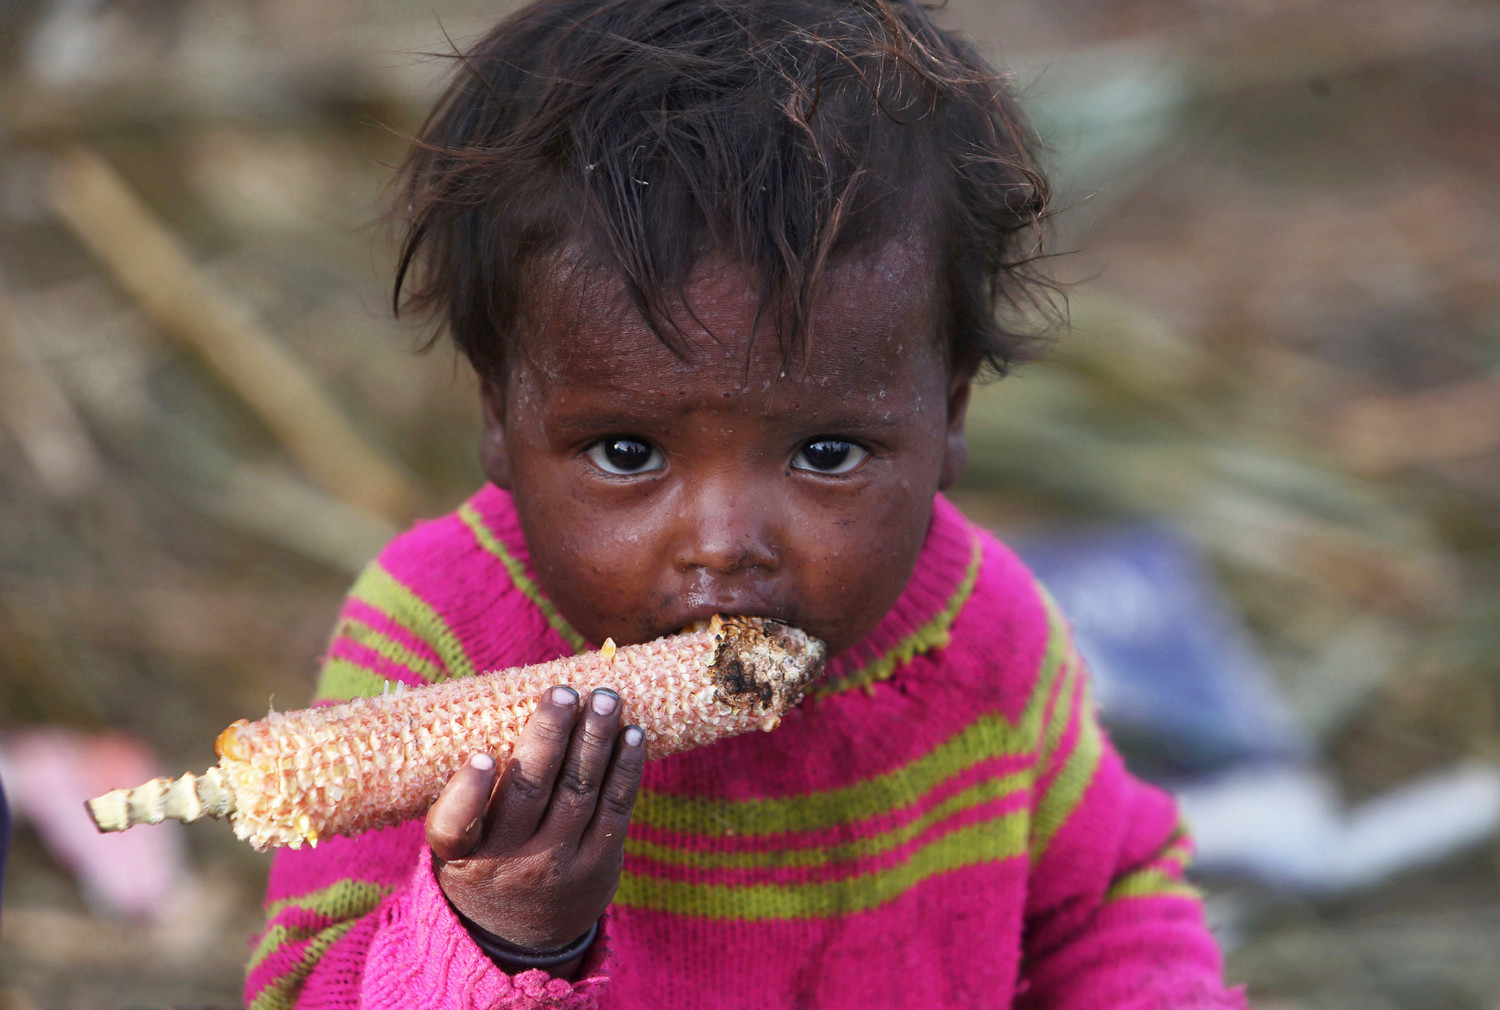 A child eats corn outside a makeshift shelter in 2015 in the Kashmir region of India. World Food Day is celebrated Oct. 16 to mark the date in 1945 the U.N. Food and Agriculture Organization was founded.